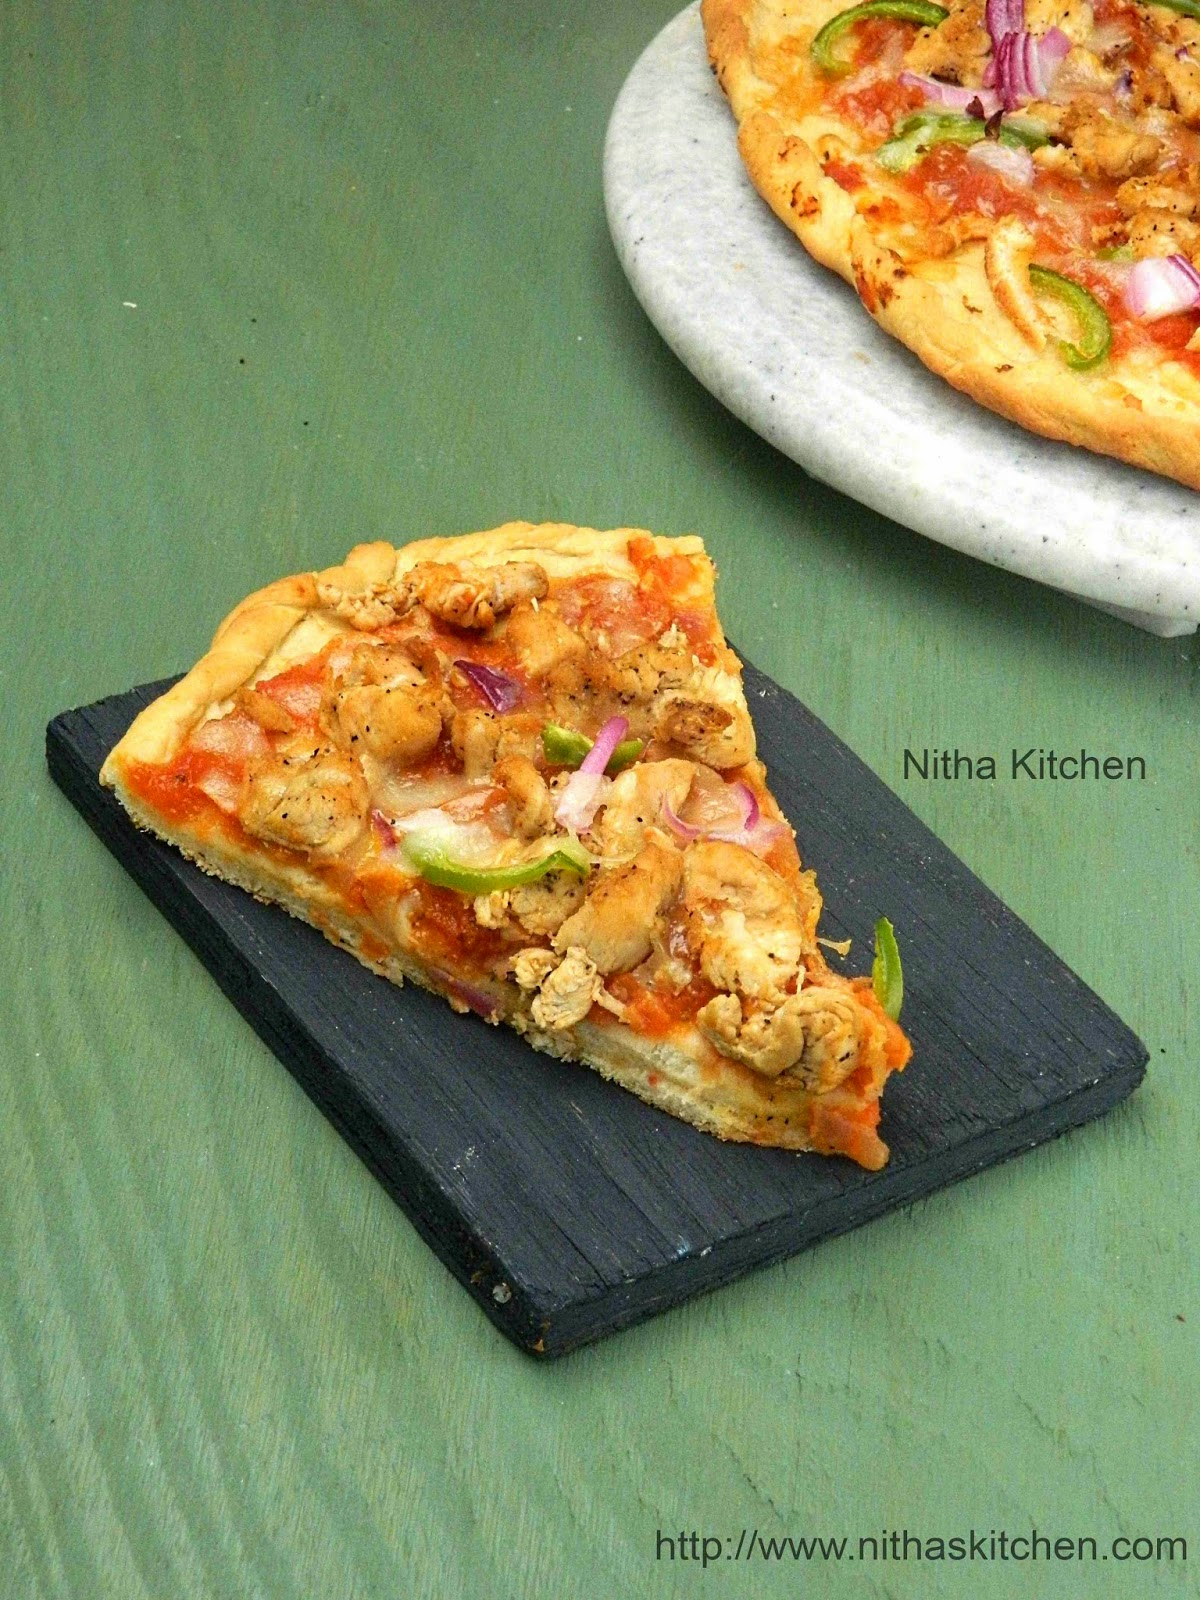 nitha kitchen pizza